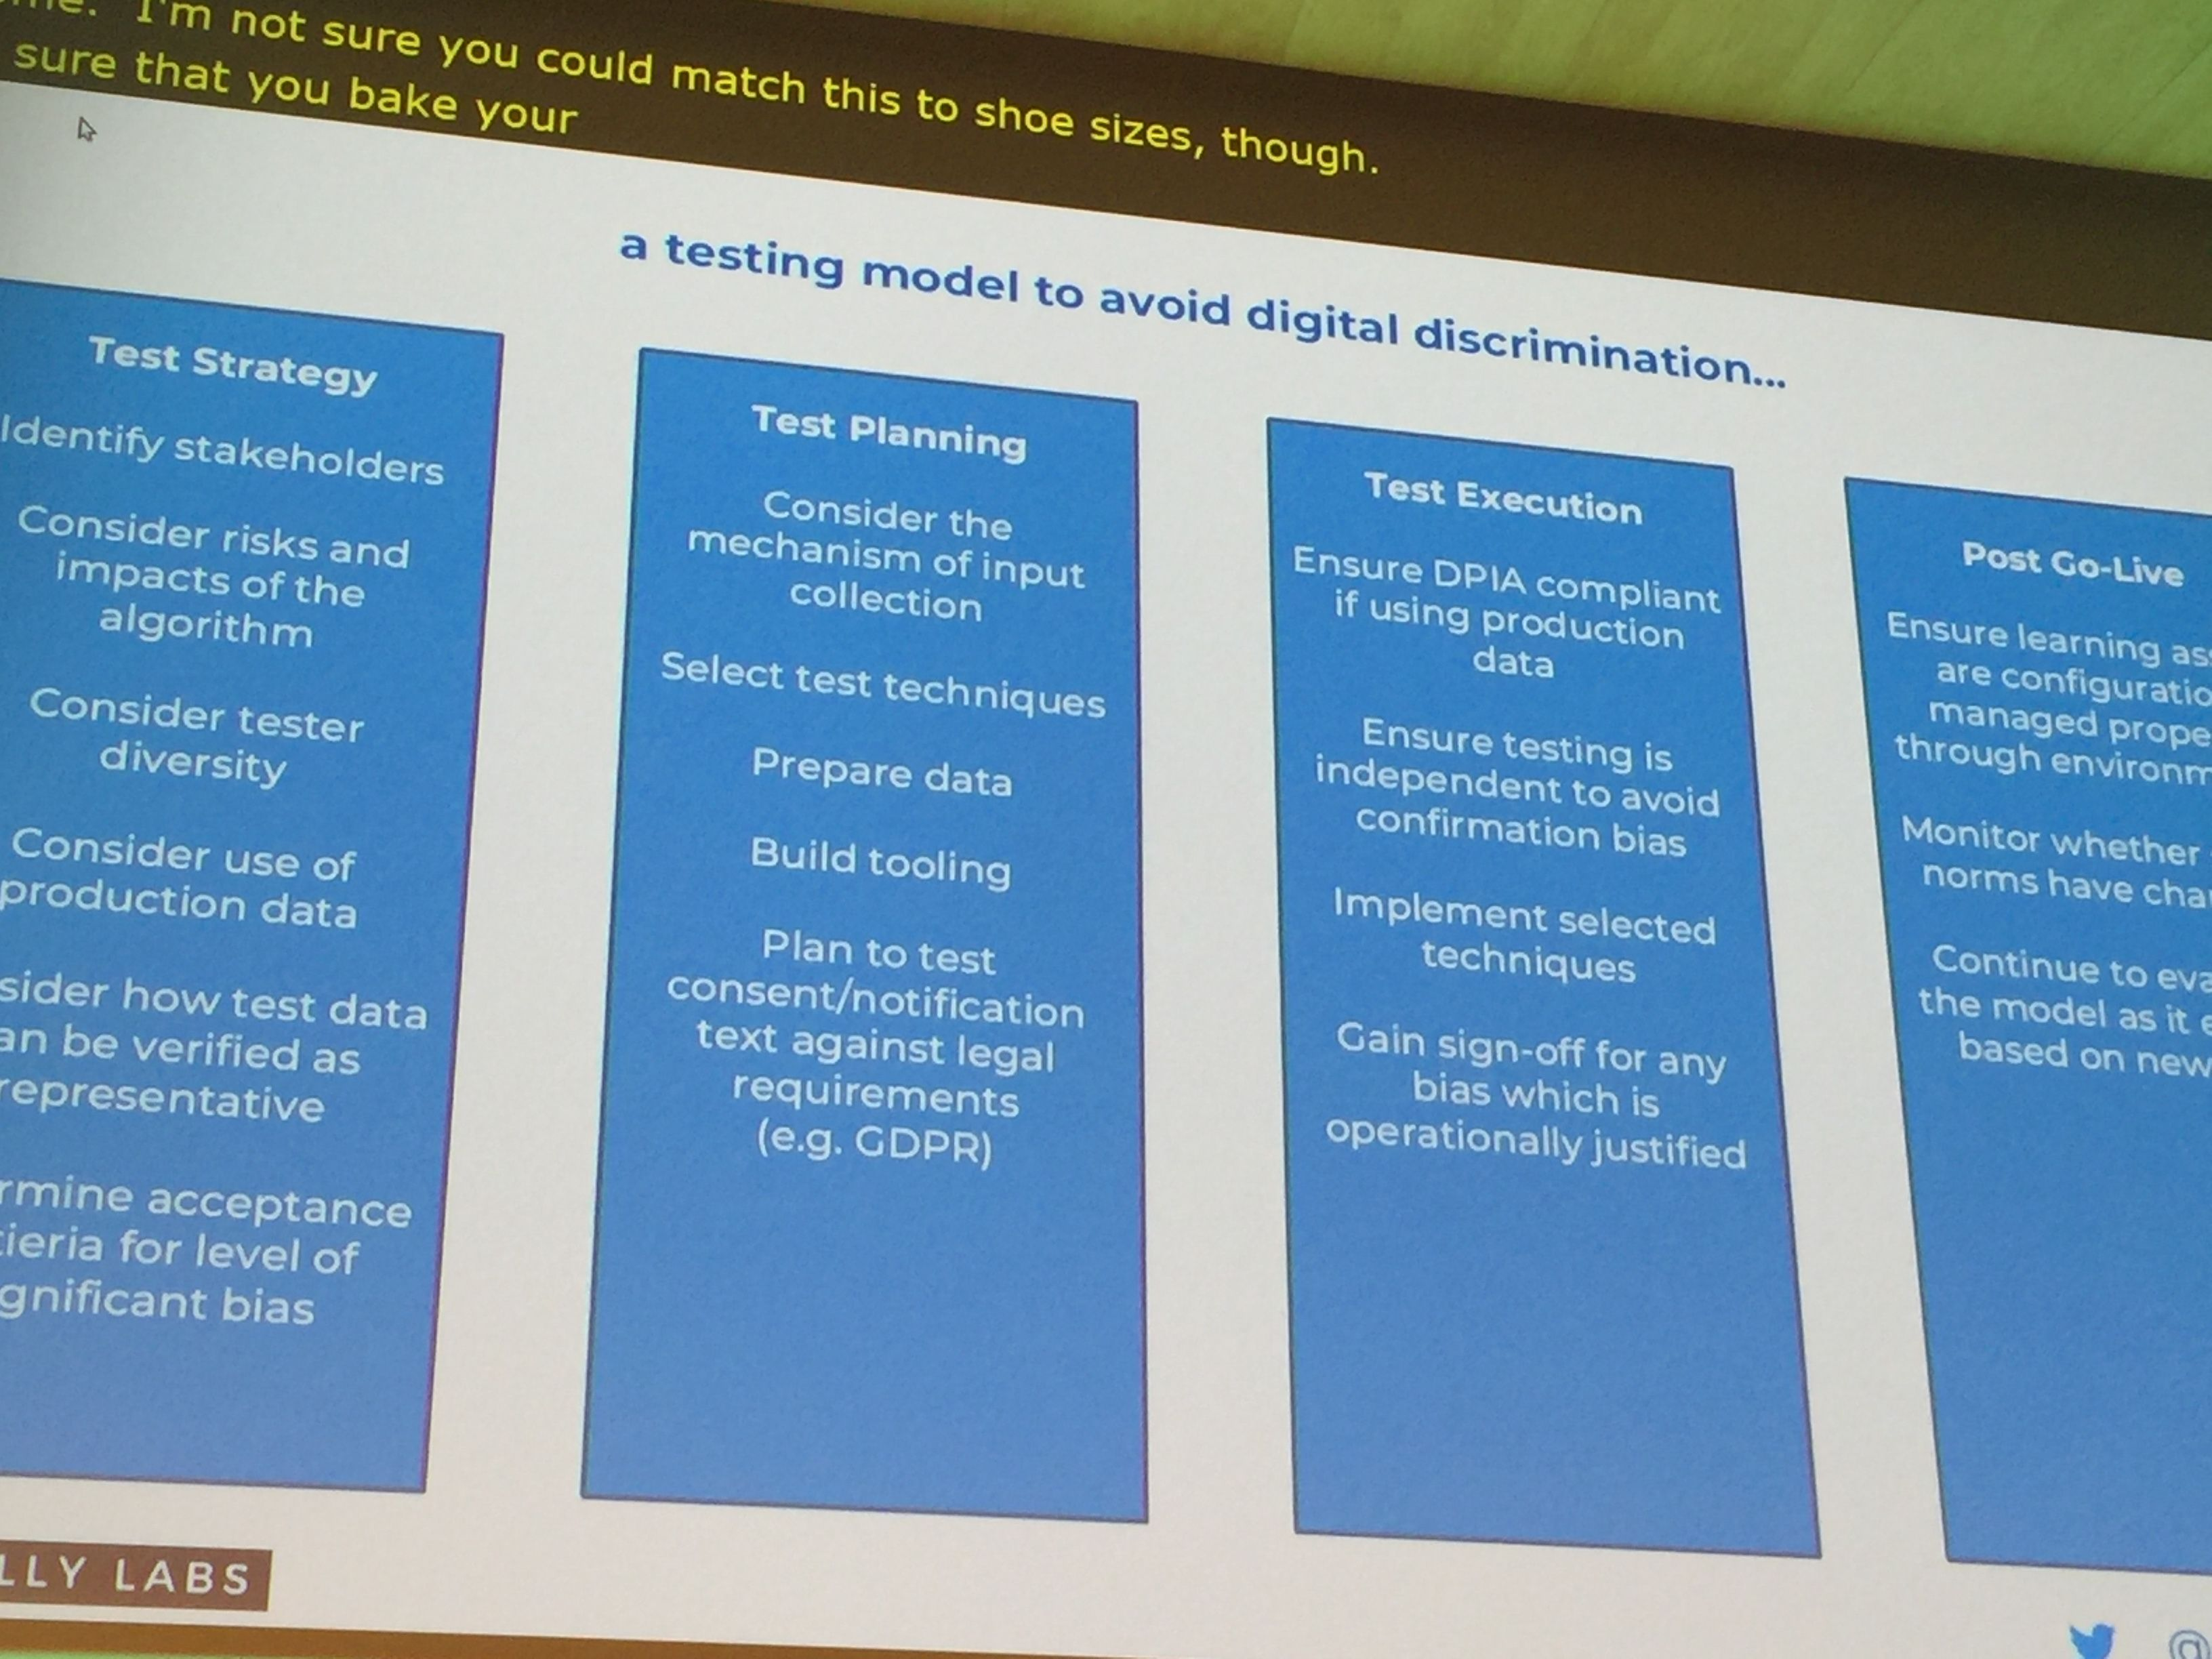 Slide showcasing ways to avoid digital discrimination